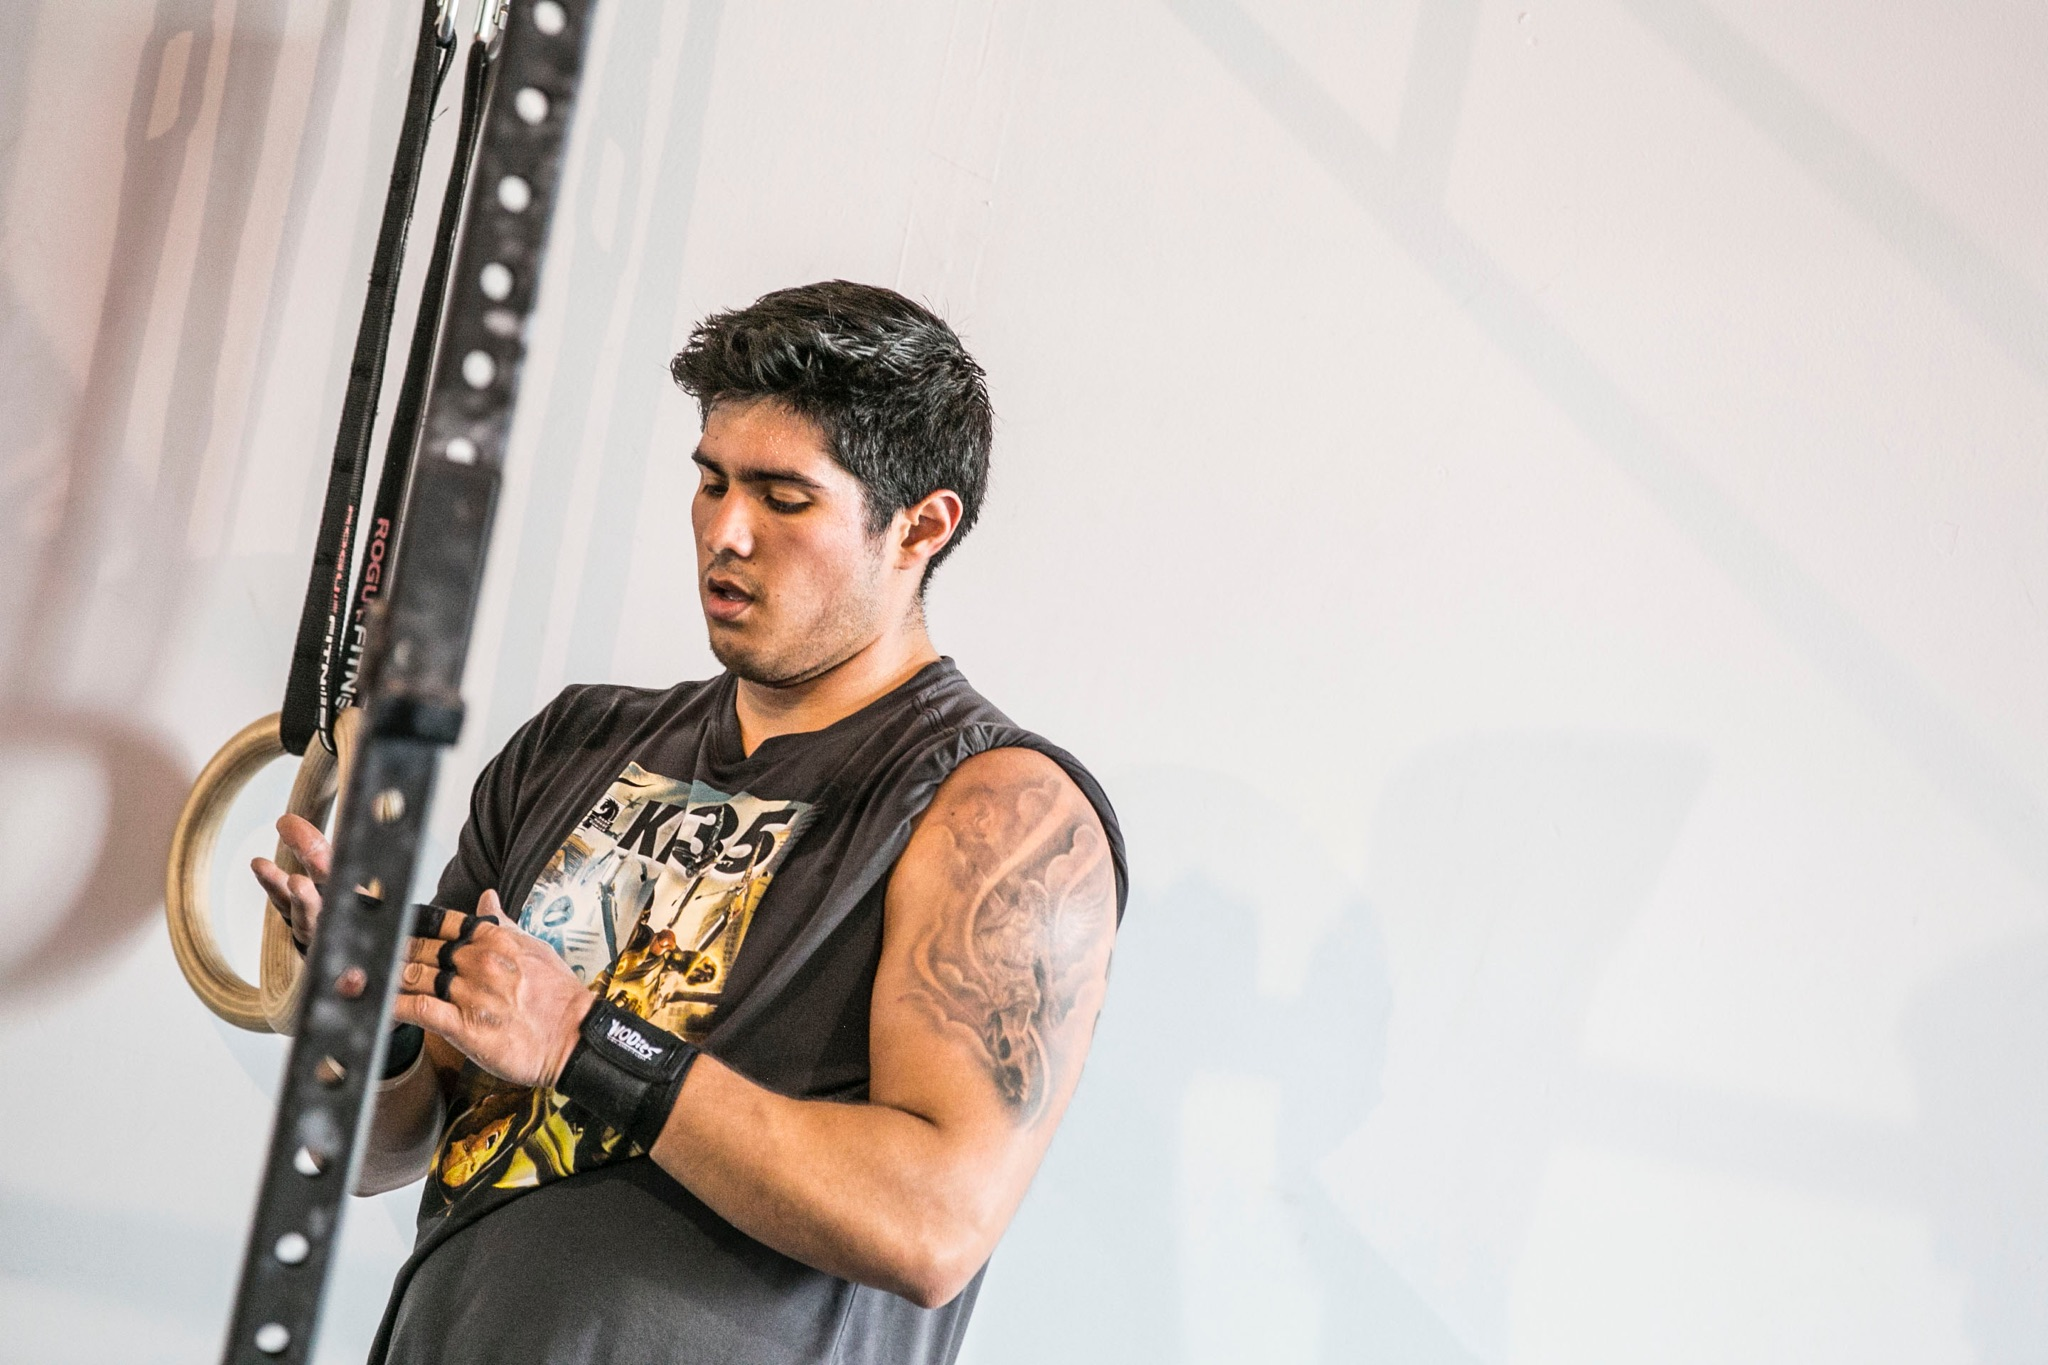 """Coach Noah Garcia played football for 11 years, and he started CrossFit to keep up the rigorous exercise he got accustomed to playing football. """"I peaked in high school (500 lb. back squat, 280 lb. power clean),"""" he says. """"I'm just trying to get back to my former glory.""""  Noah is passionate about pushing past the physical limits people set for themselves, and he loves seeing members be able to do movements or weights they didn't think they could before. When he's not CrossFitting, you can find Noah throwing axes, riding motorcycles and cooking.  His favorite quote is """"The harder you work, the luckier you get.""""  CERTIFICATIONS: CrossFit Level 1 American Council on Exercise Personal Trainer Certified"""